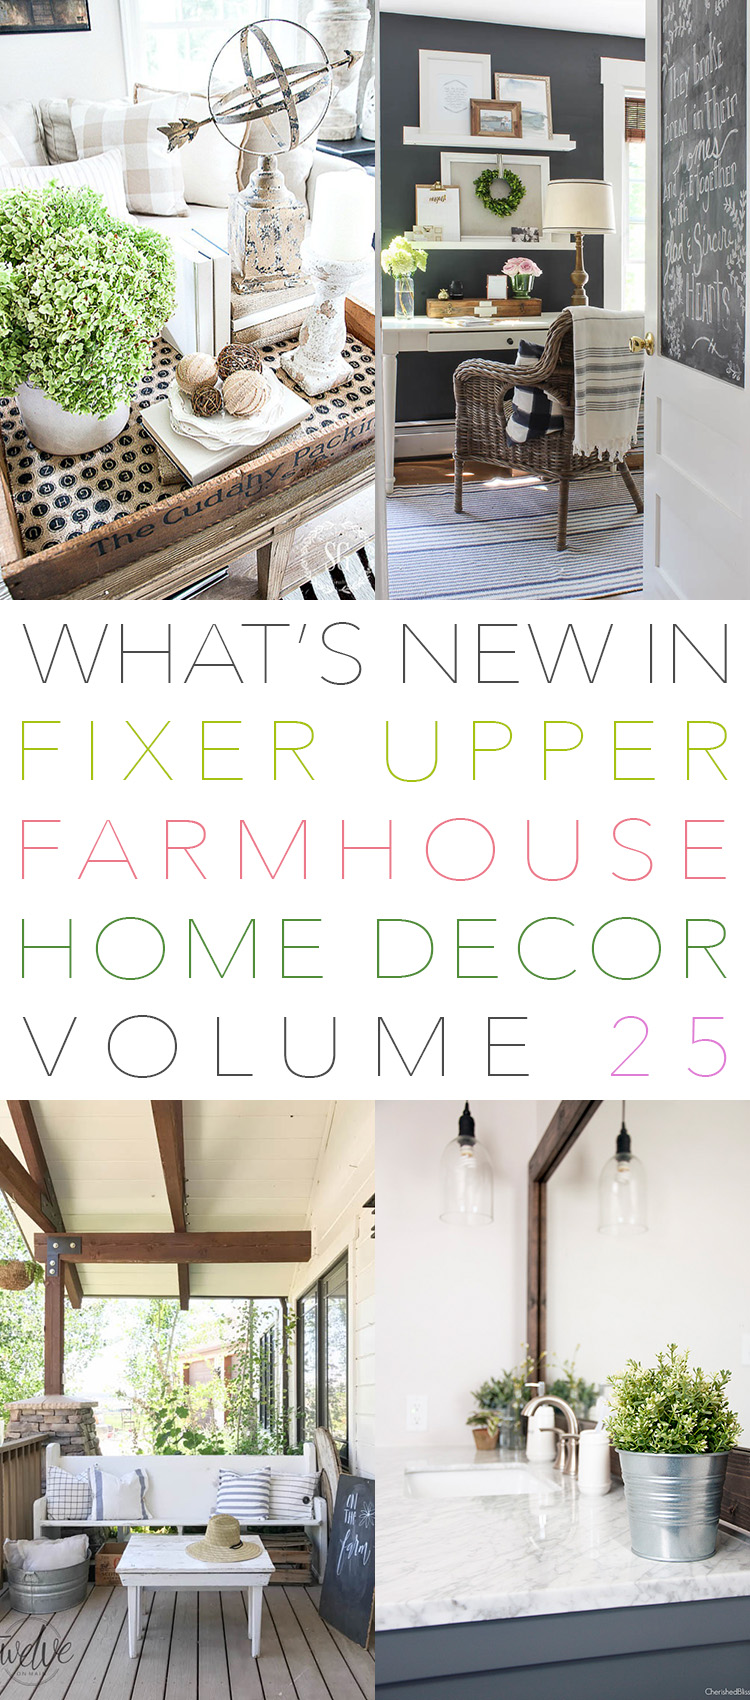 http://thecottagemarket.com/wp-content/uploads/2017/08/Farmhouse-TOW-1.jpg